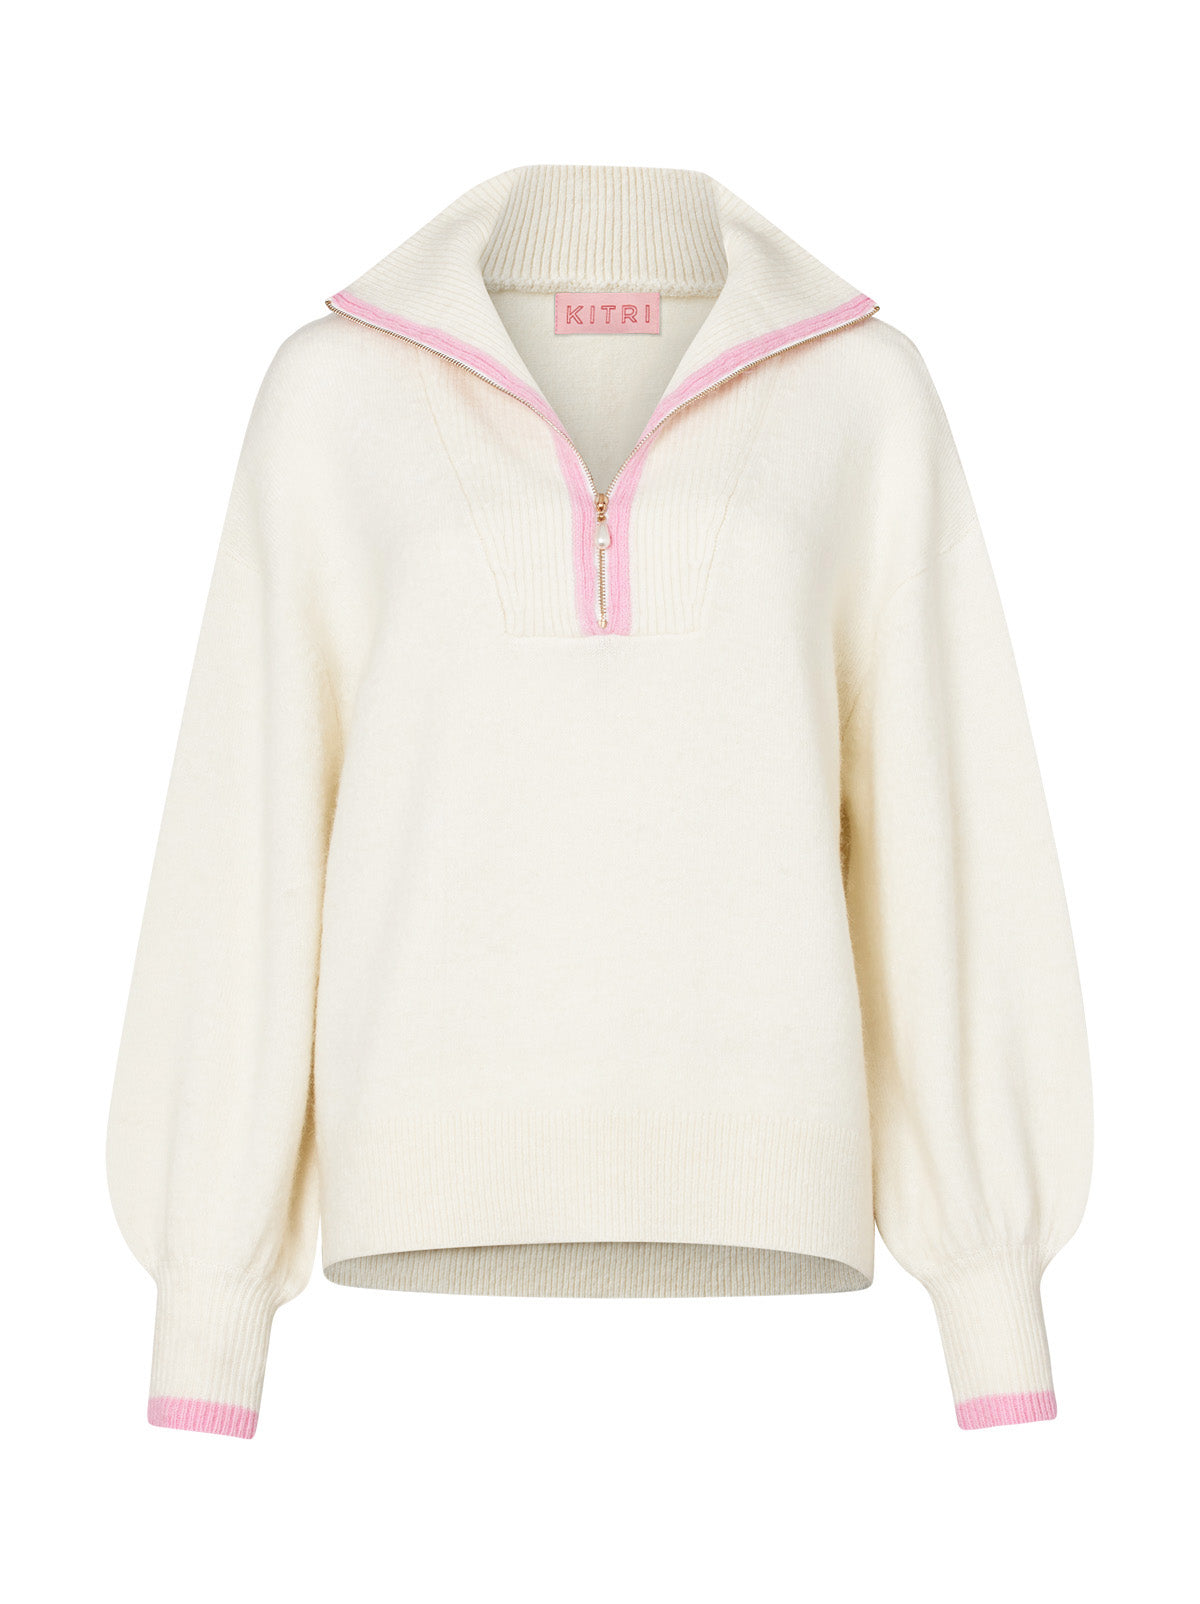 Lorna Ivory Alpaca Blend Zip Collar Sweater